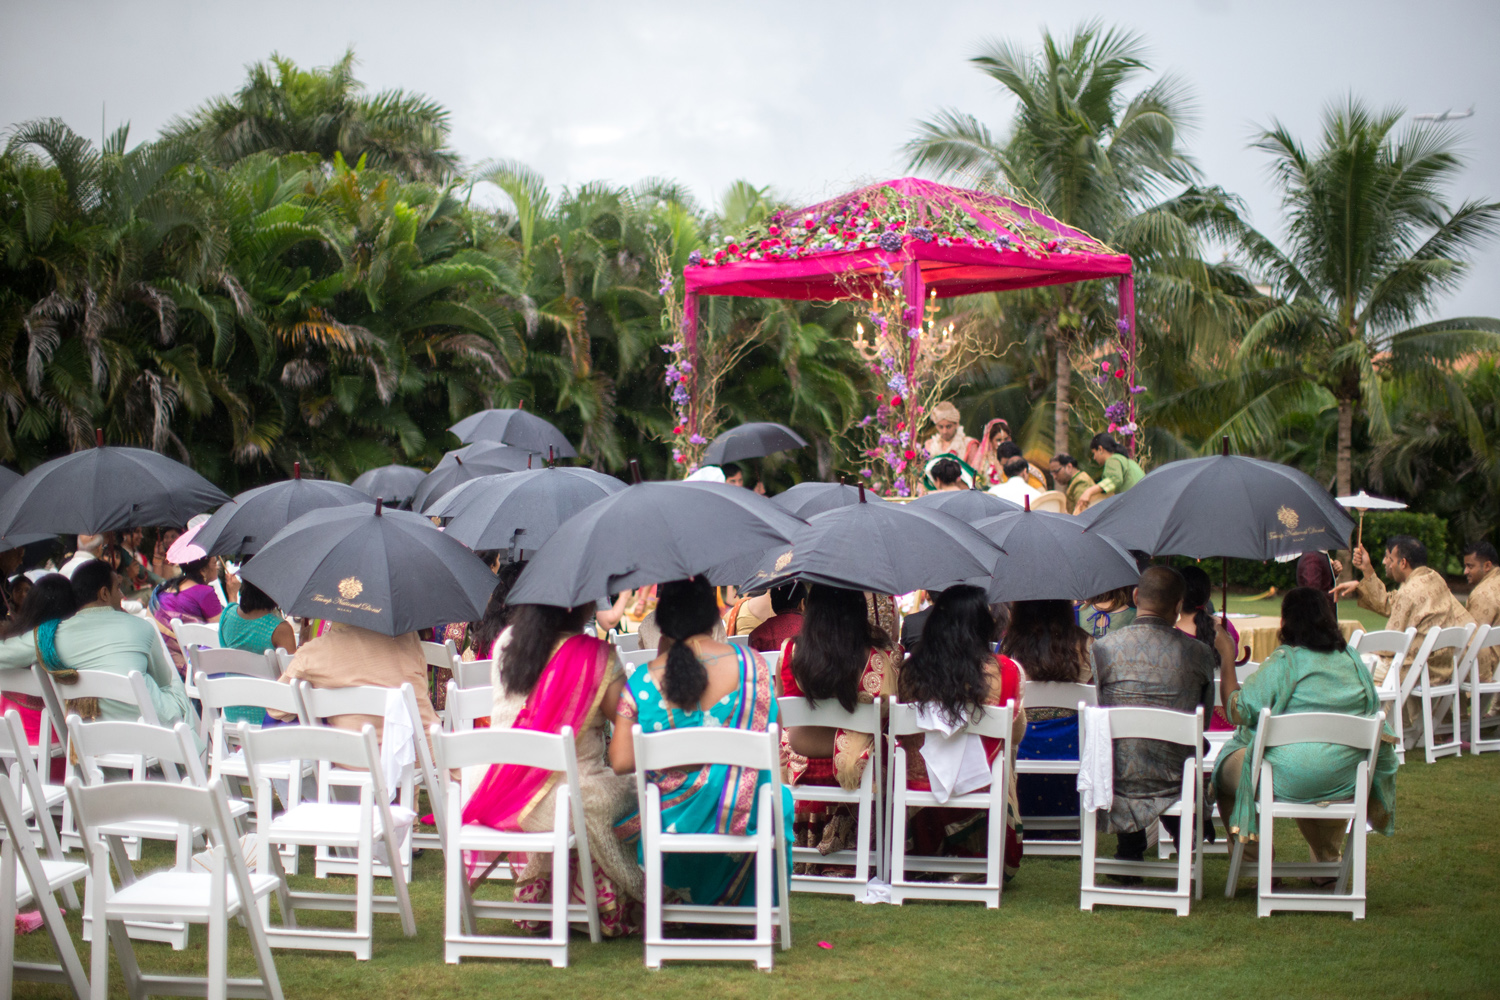 Rain On Your Wedding Day.Tips On How To Handle Rain On Your Wedding Day Inside Weddings